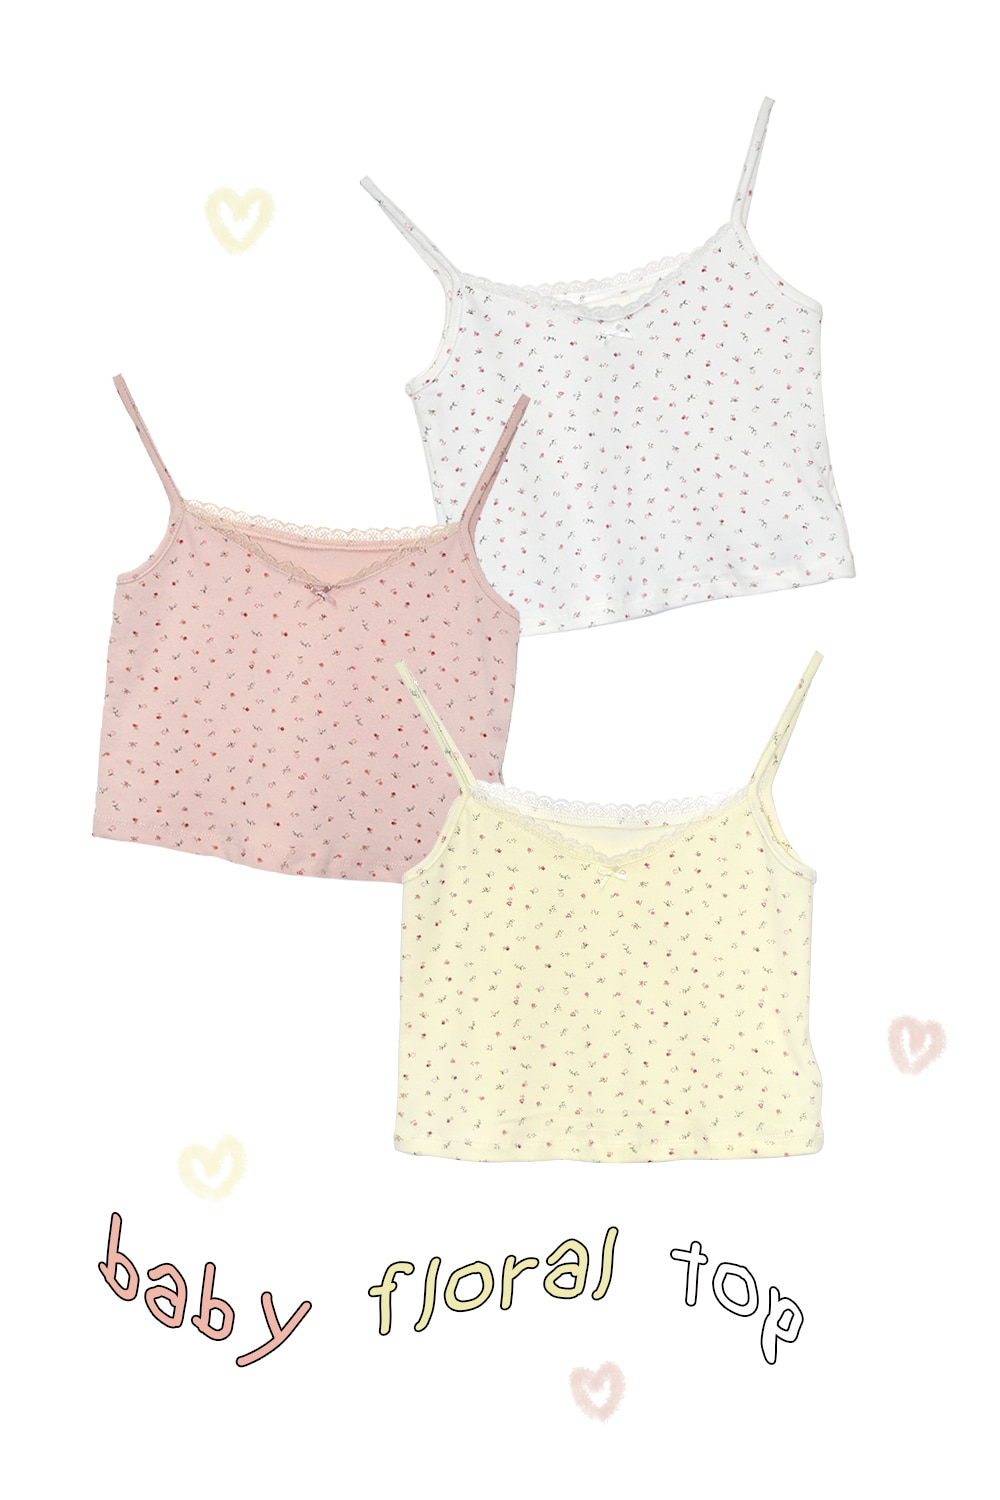 baby floral top (3colors)